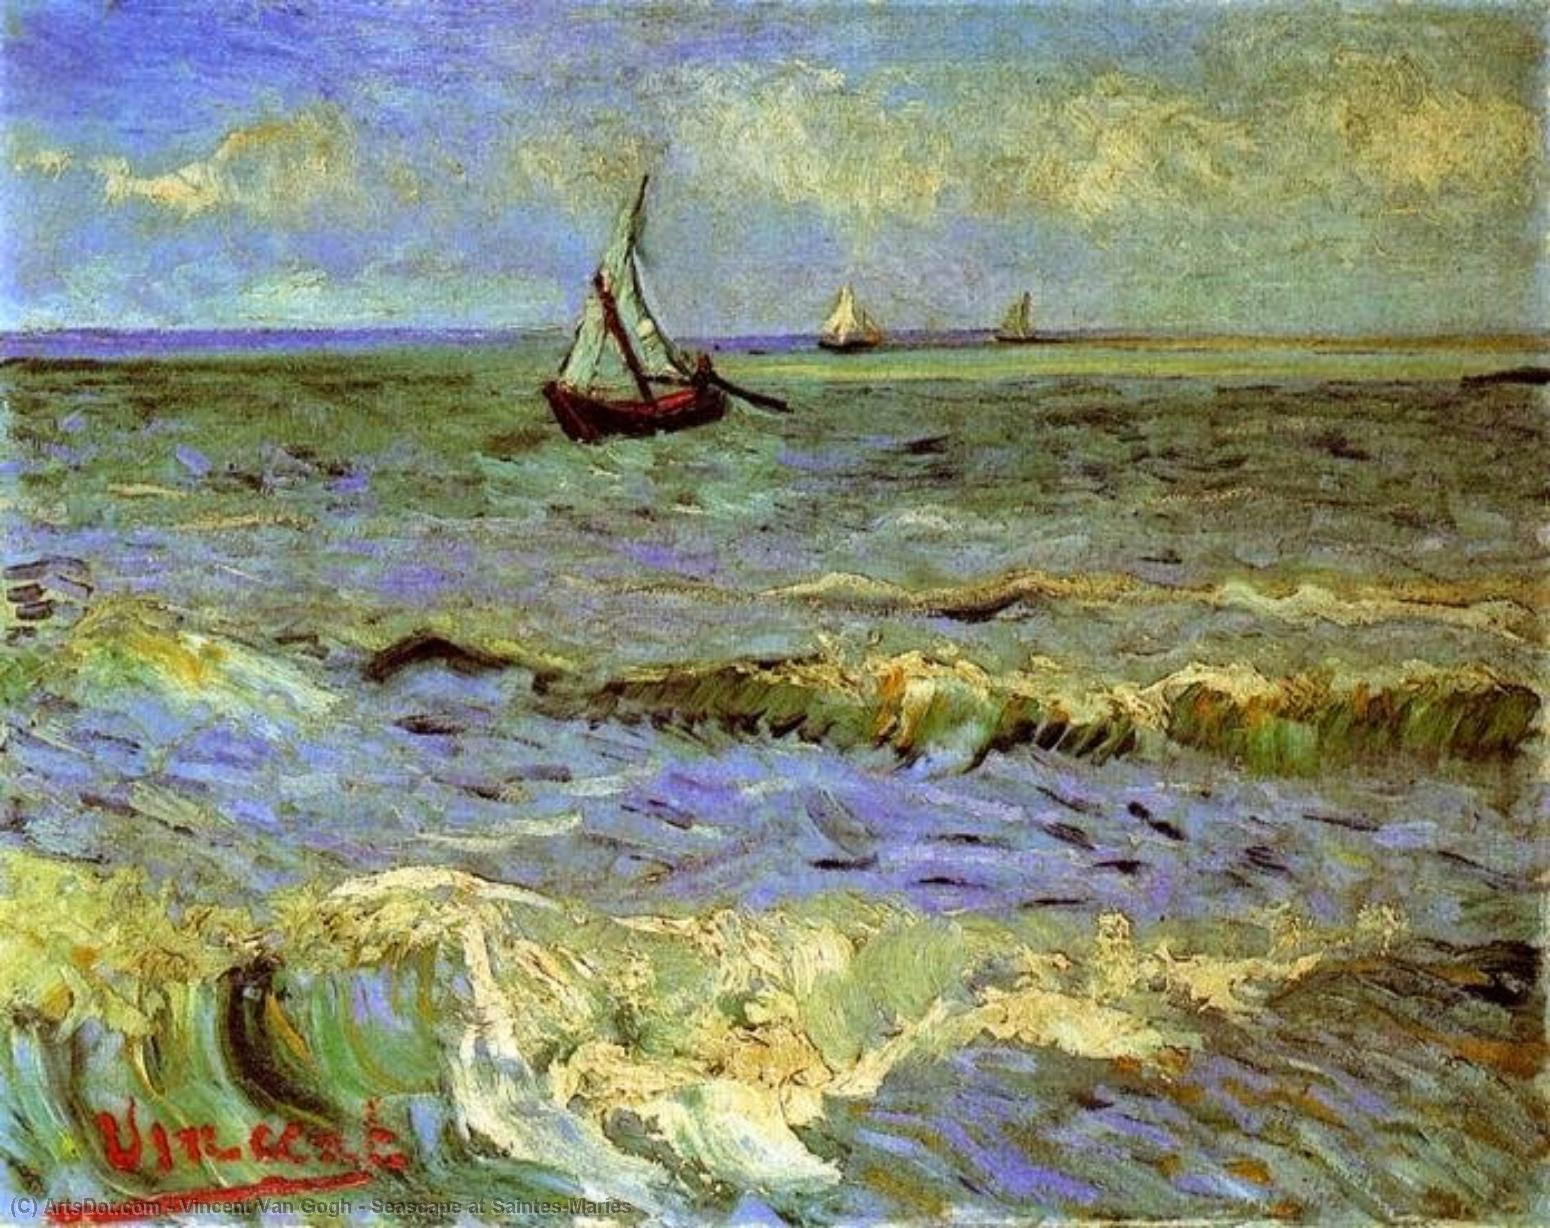 Wikioo.org - The Encyclopedia of Fine Arts - Painting, Artwork by Vincent Van Gogh - Seascape at Saintes-Maries